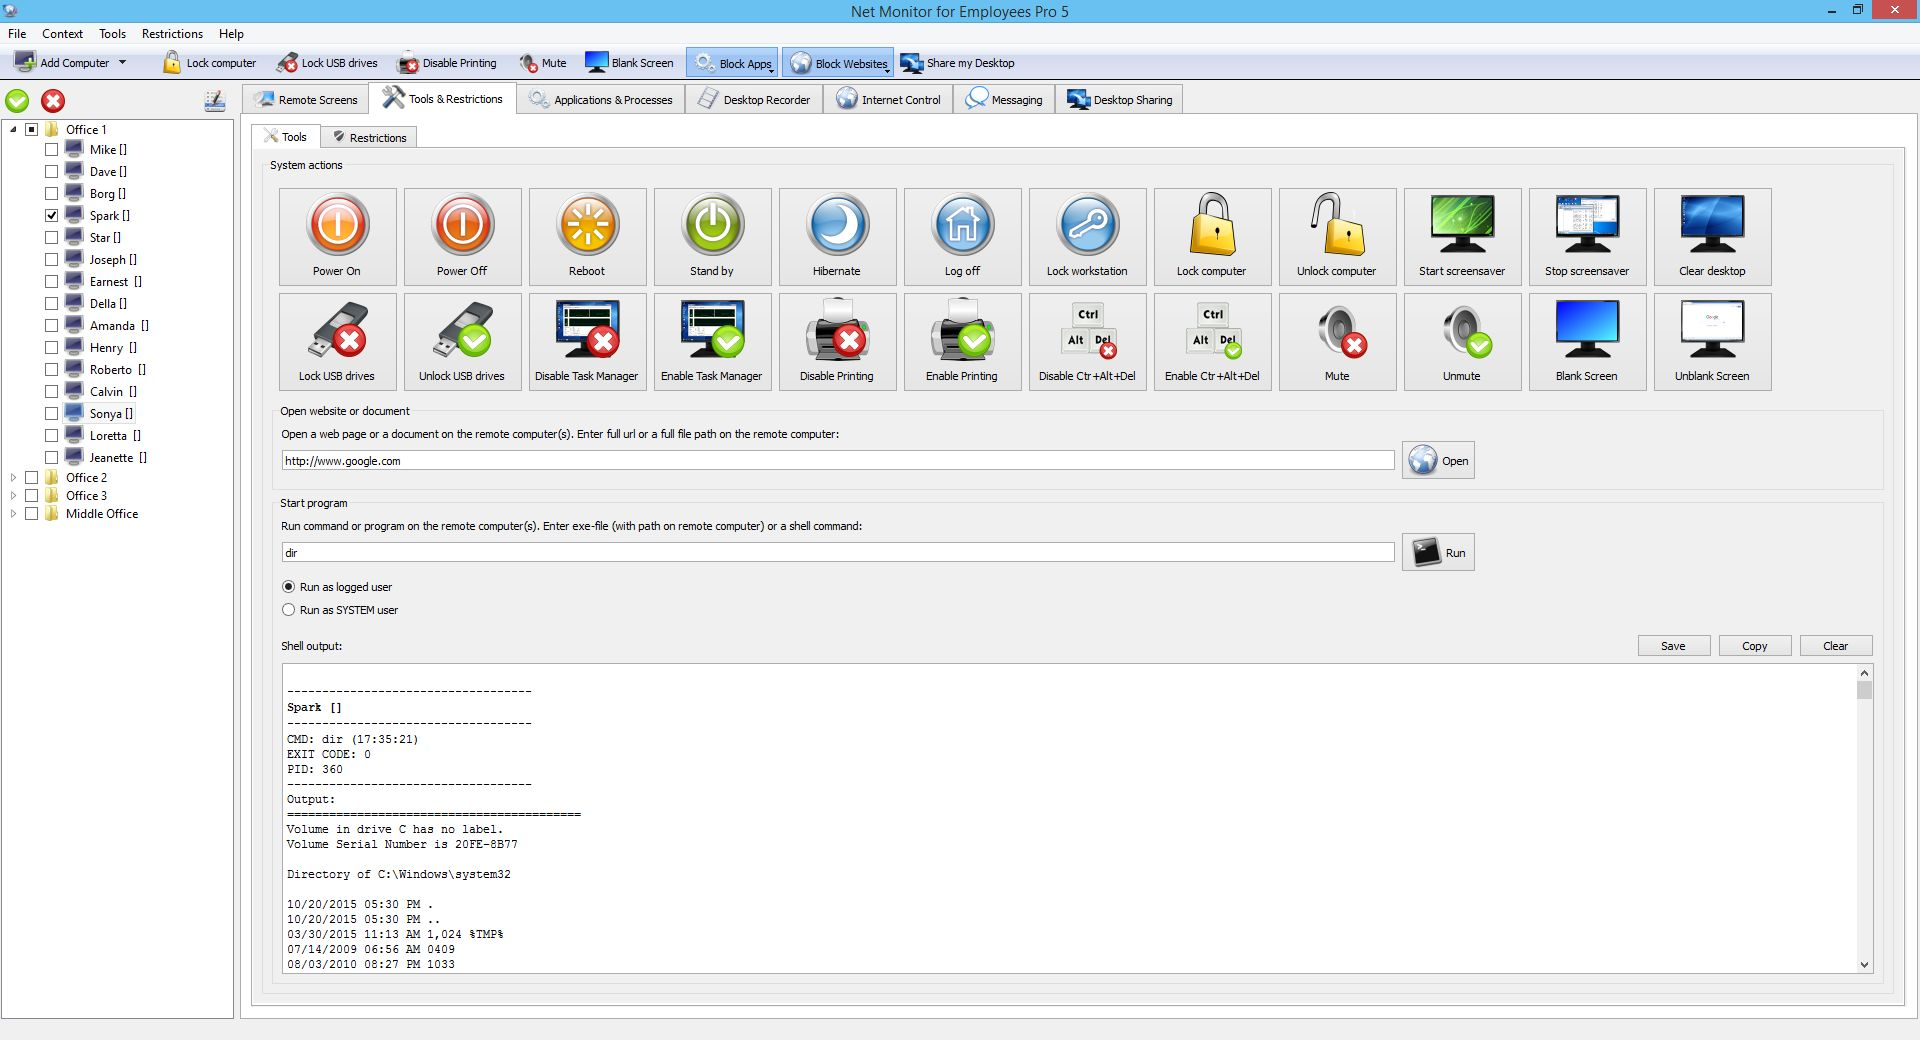 See Employee Monitoring Software Screenshots